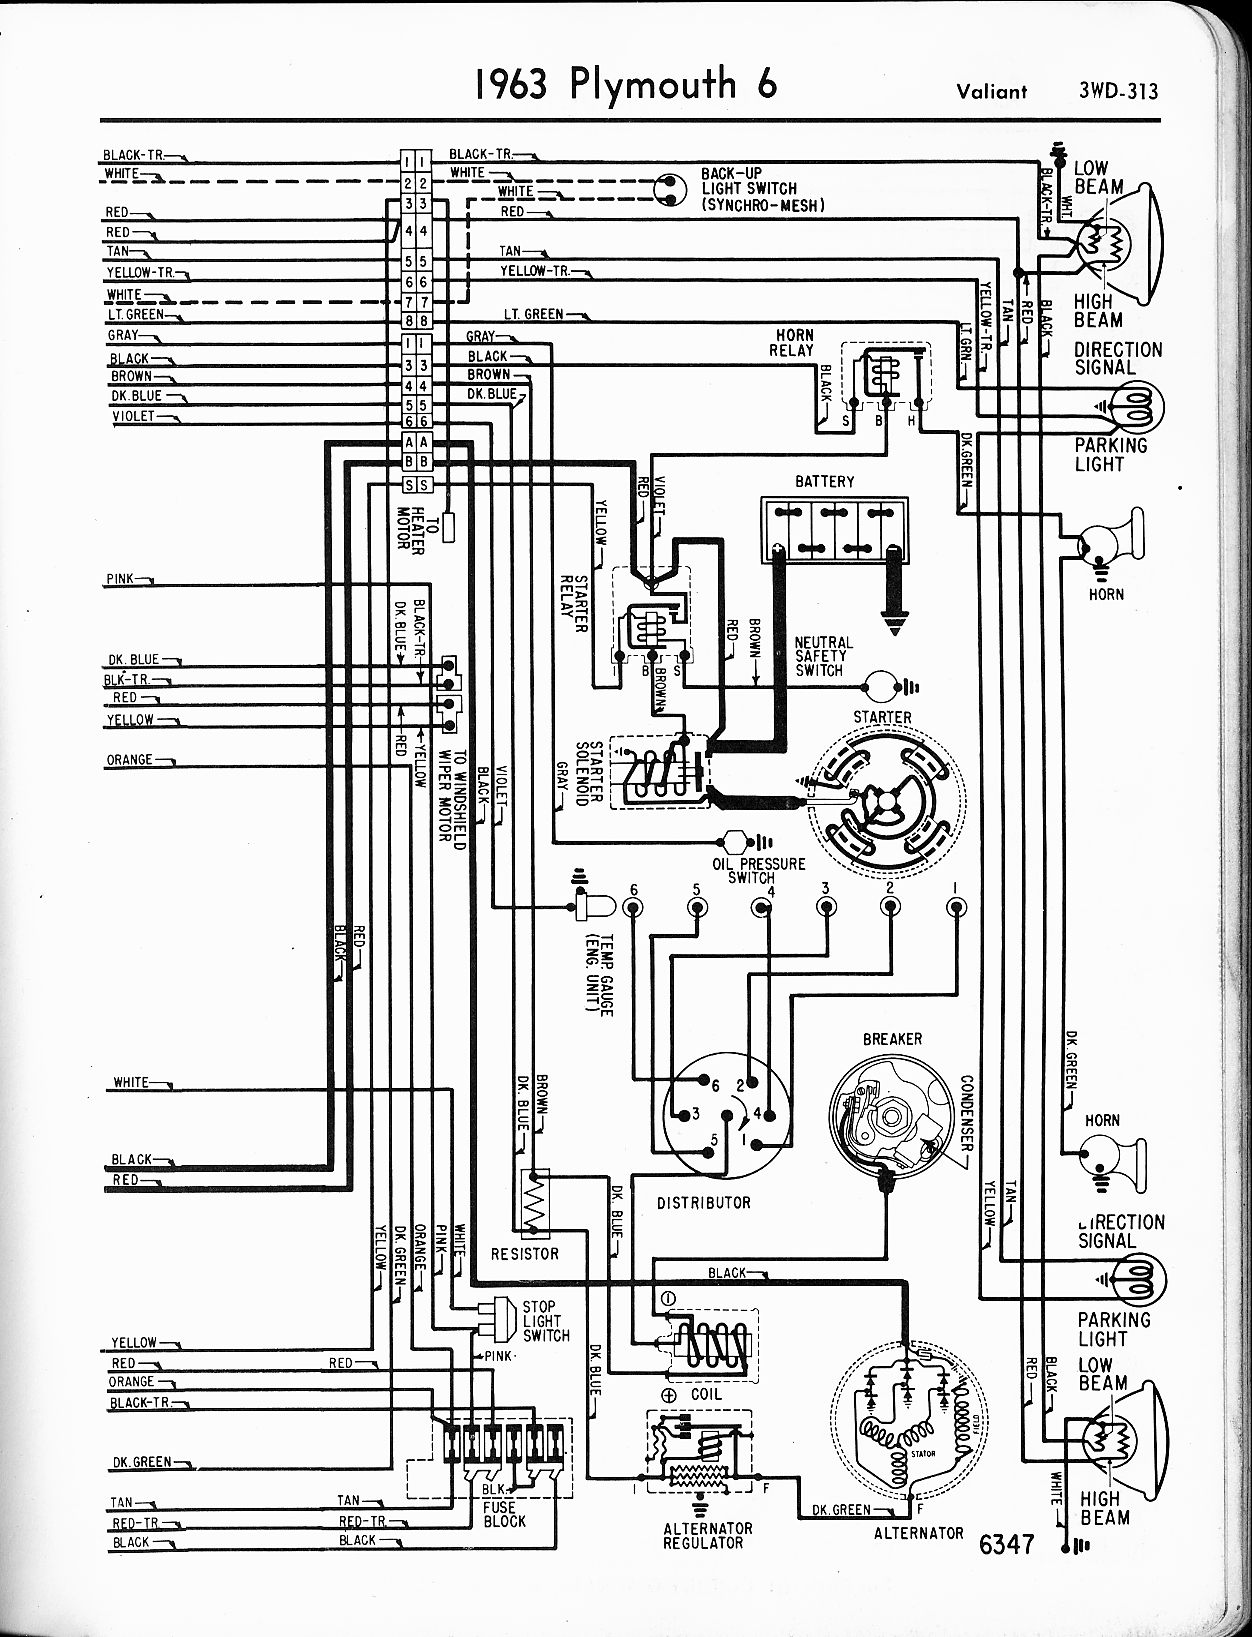 70 Mopar Wiring Diagram Library Schematic Of Atom Get Free Image About 1956 1965 Plymouth The Old Car Manual Project 1972 Barracuda 1970